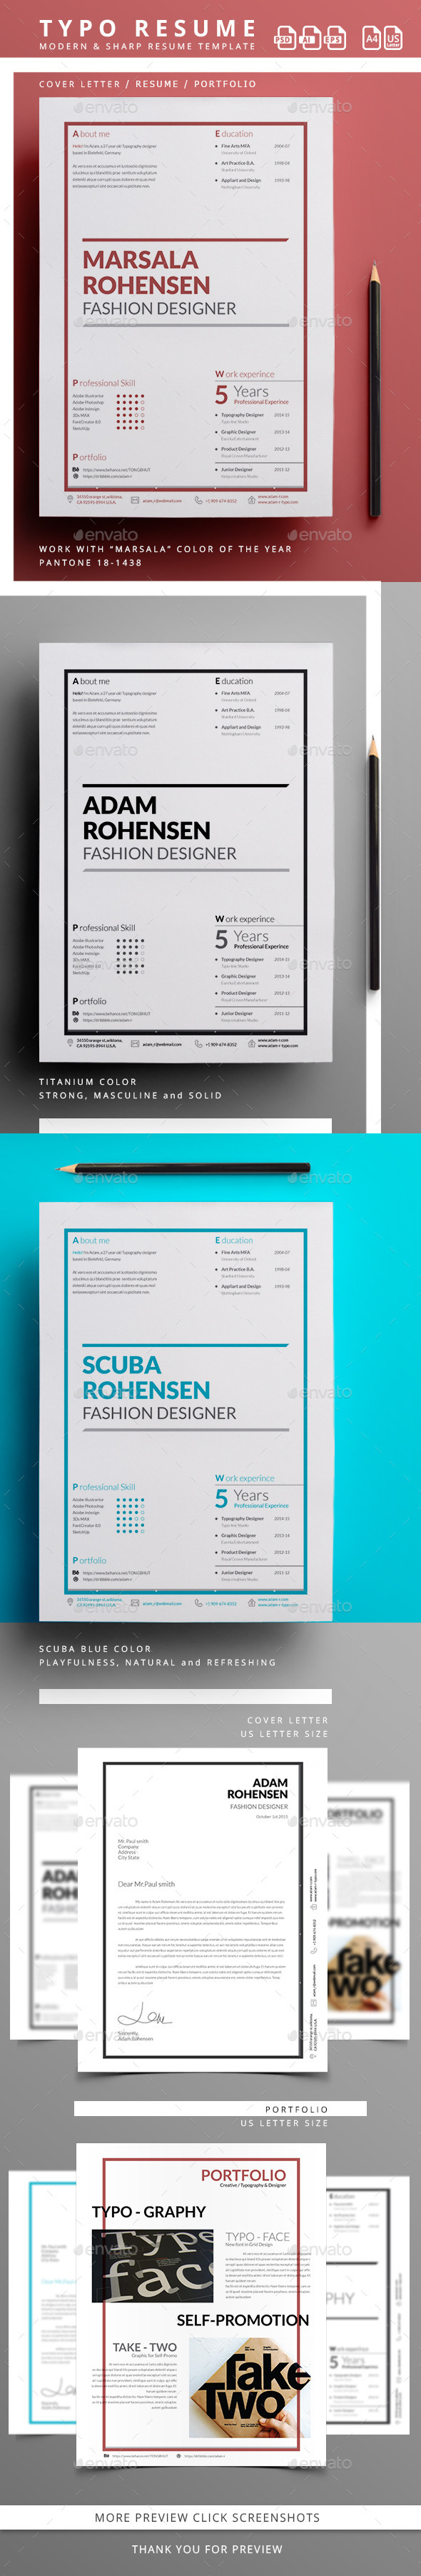 GraphicRiver Typo Resume 2 10591315